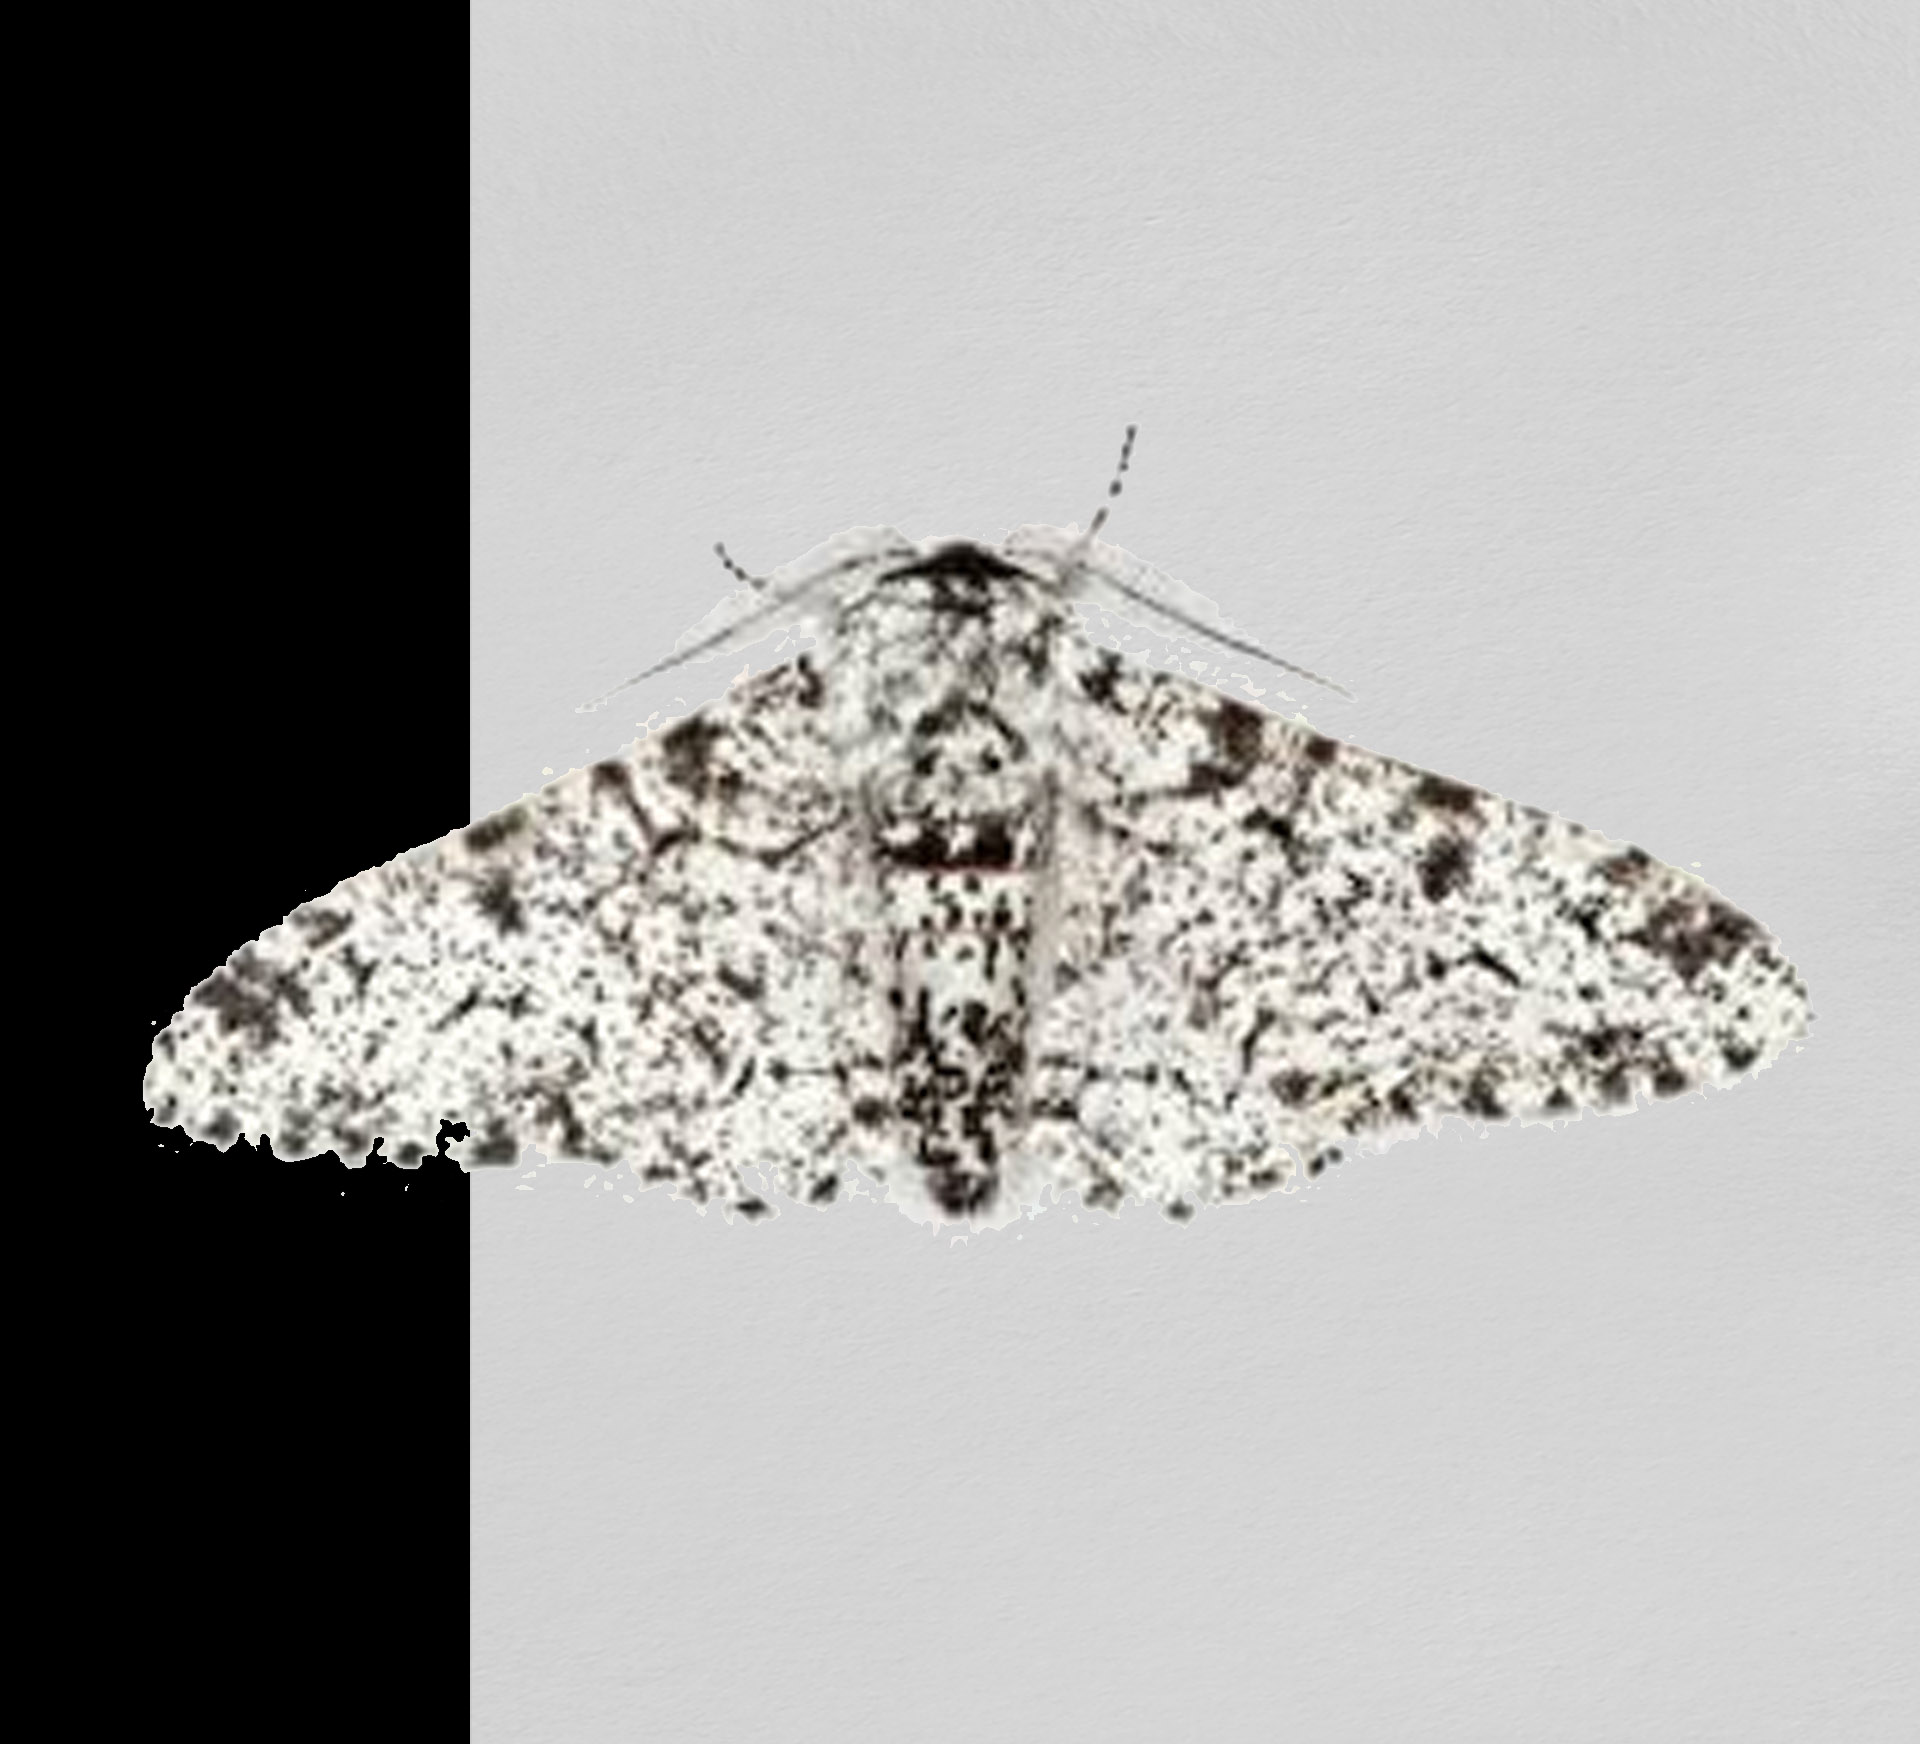 The Peppered Moth Story Vindicated